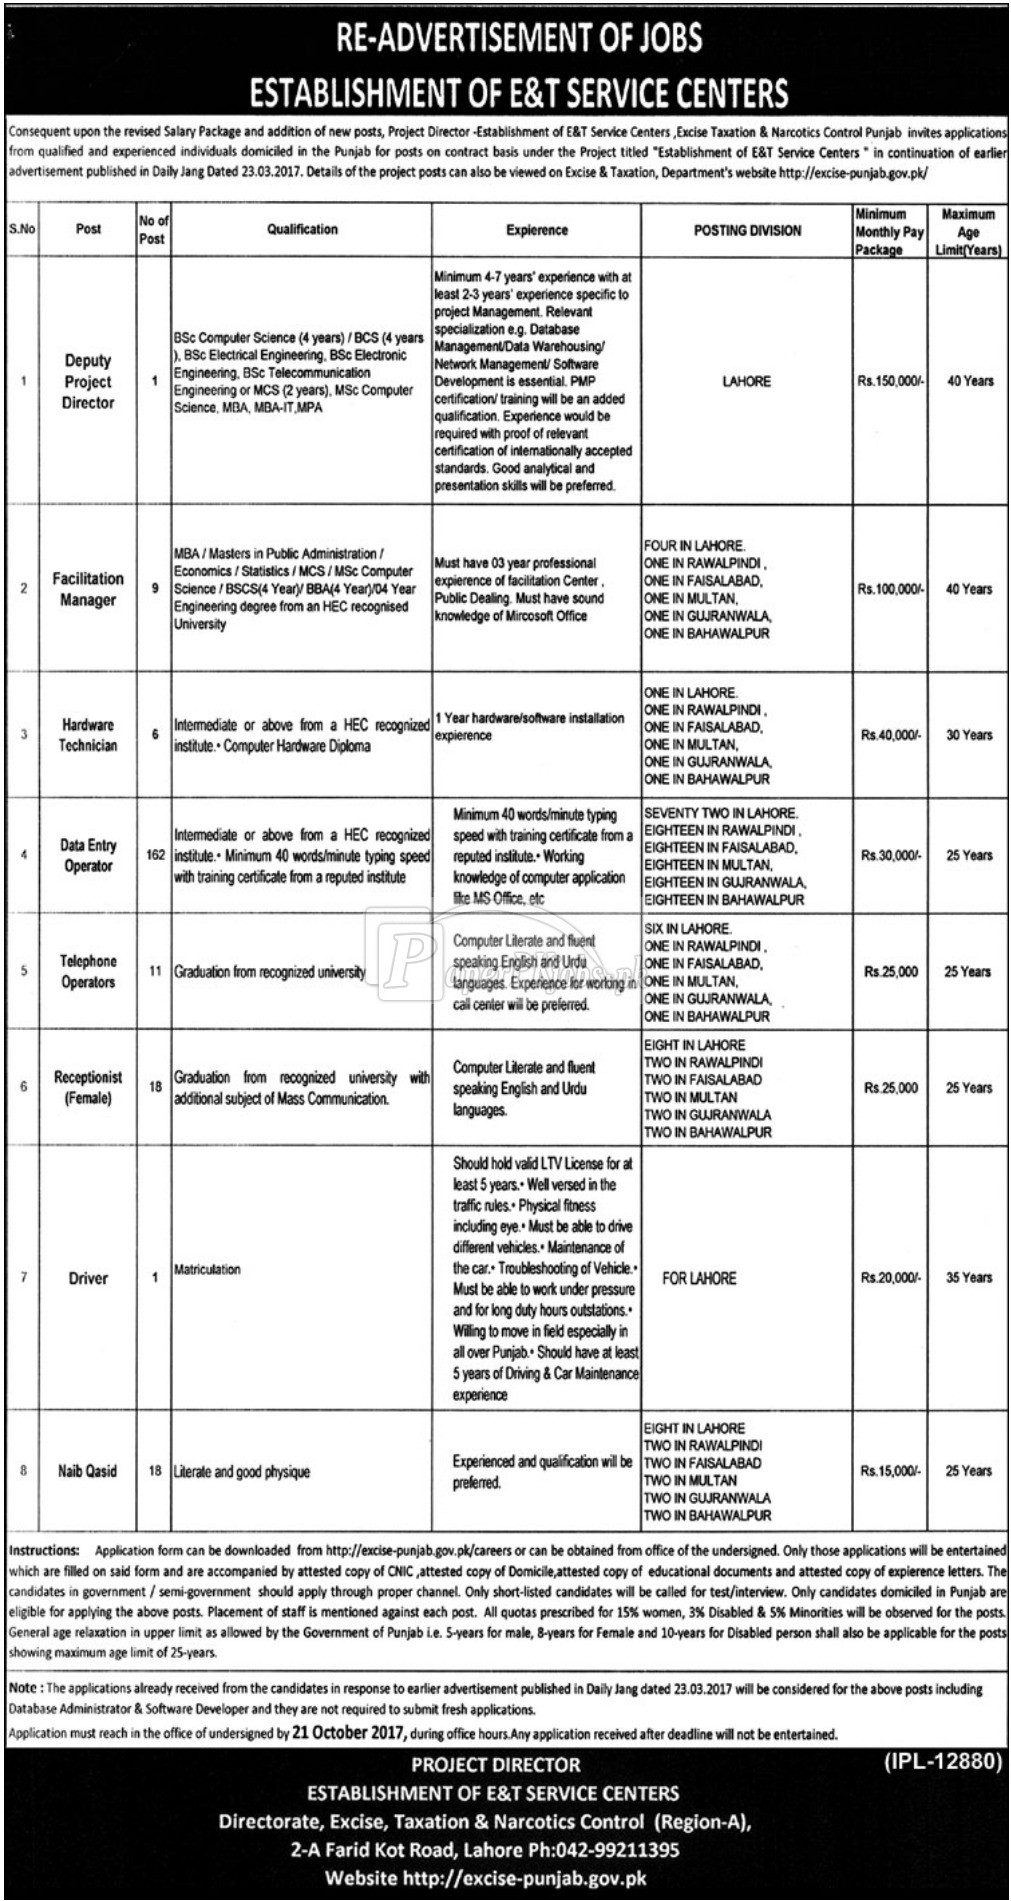 Excise Taxation & Narcotics Control Department Punjab Jobs 2017